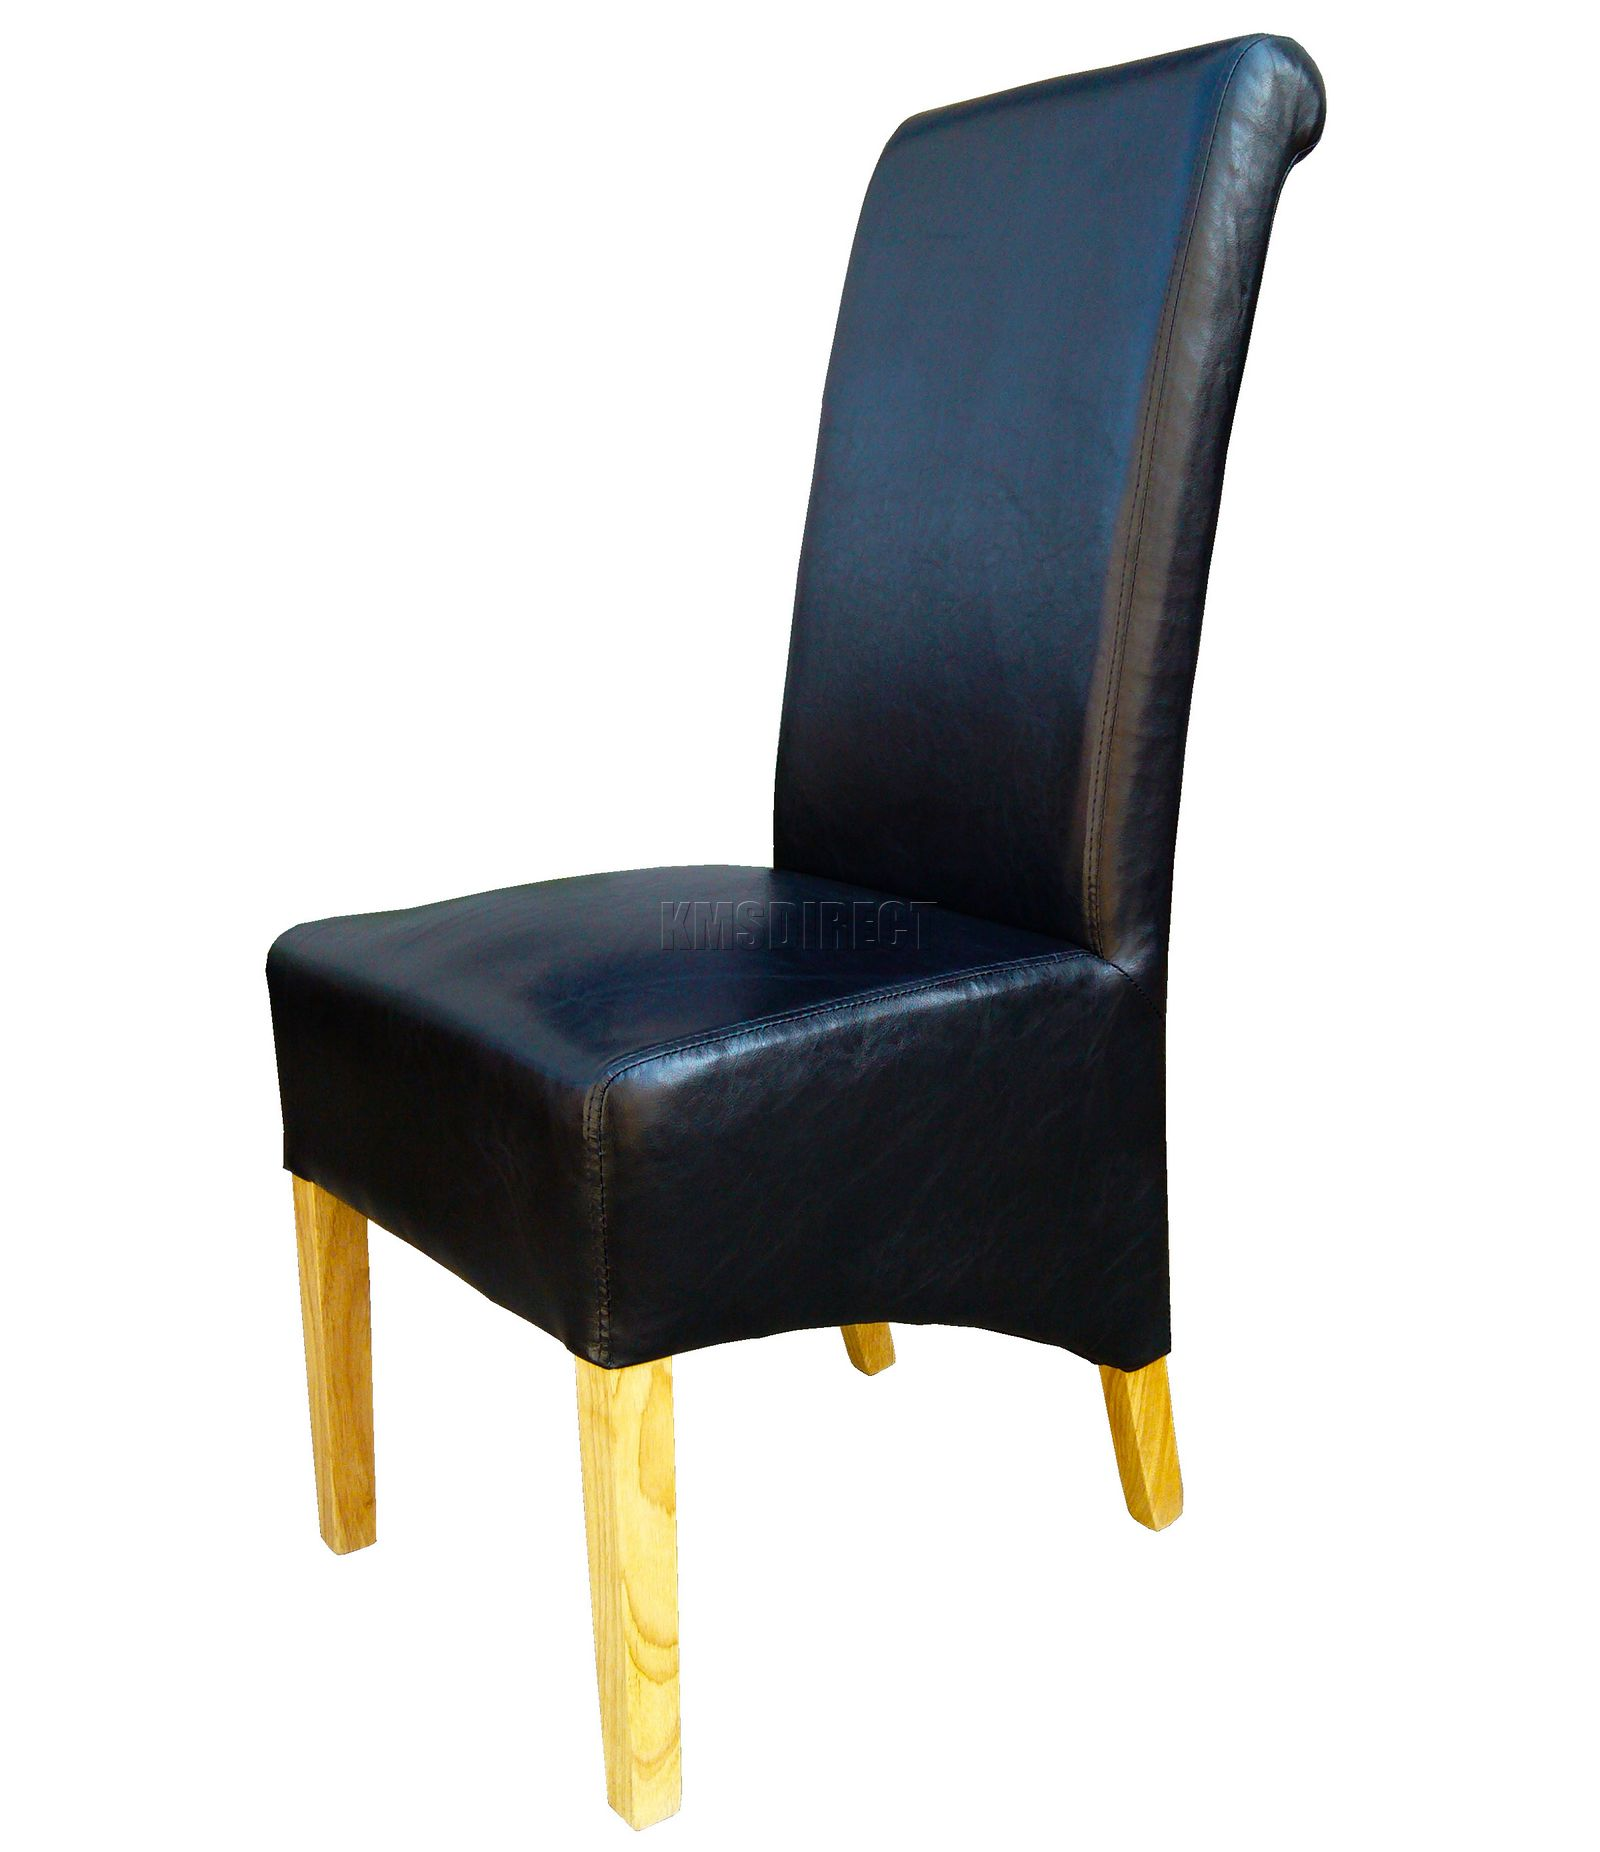 New Premium Dining Chairs Black Faux Leather Roll Top